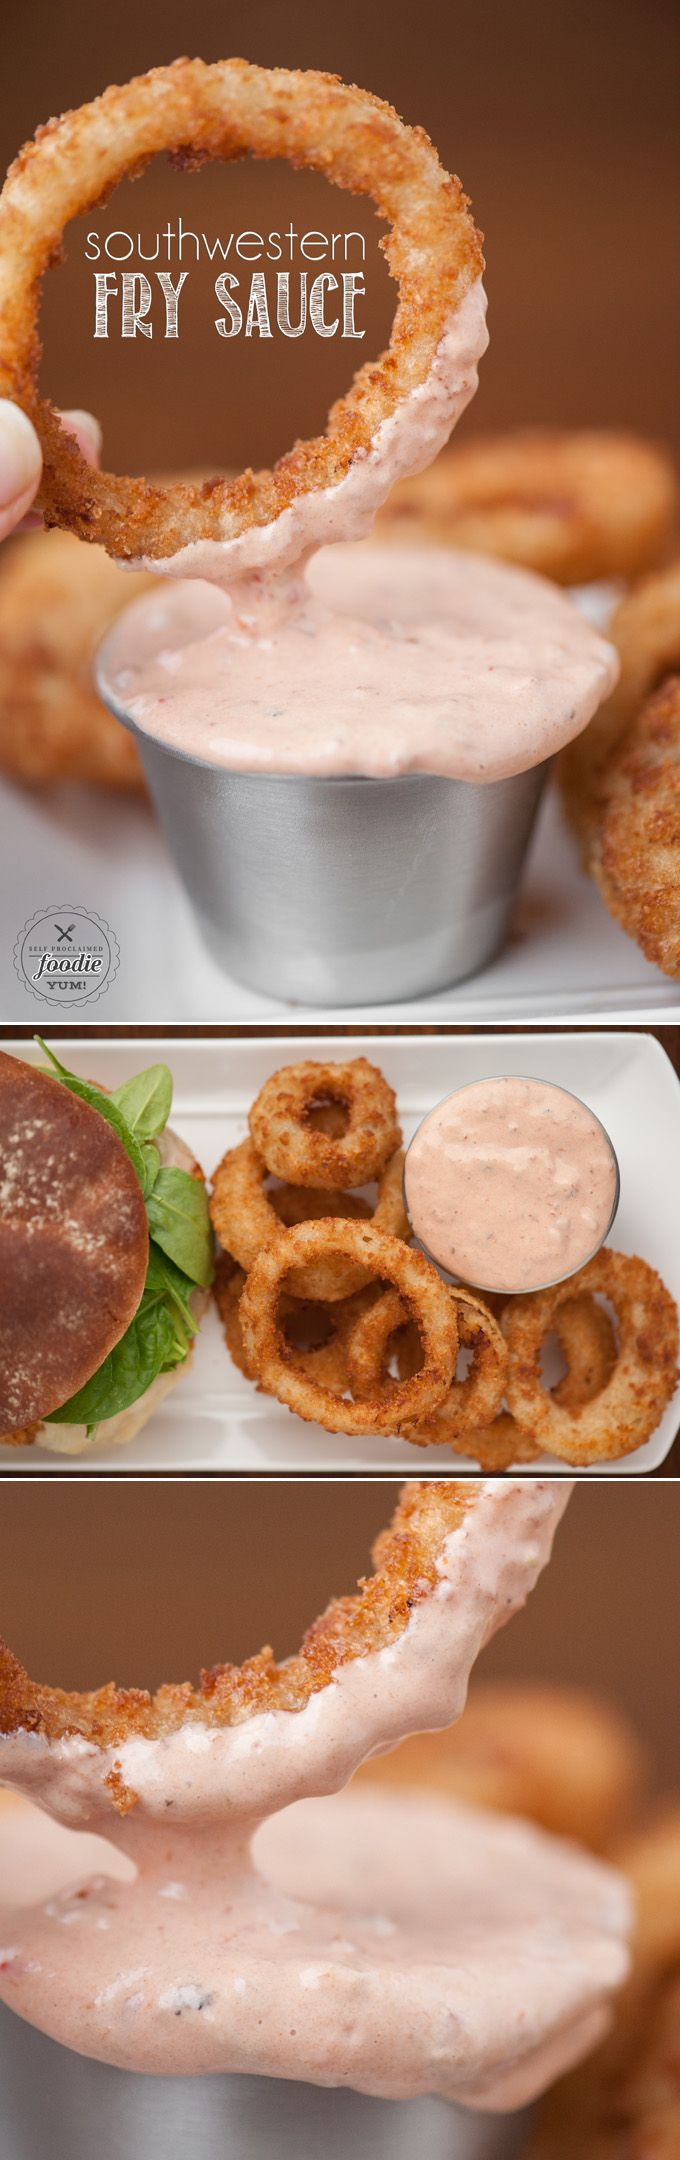 This spicy Southwestern Fry Sauce takes only minutes to prepare and makes a great dip for your fries or onion rings and tastes outstanding on a burger.